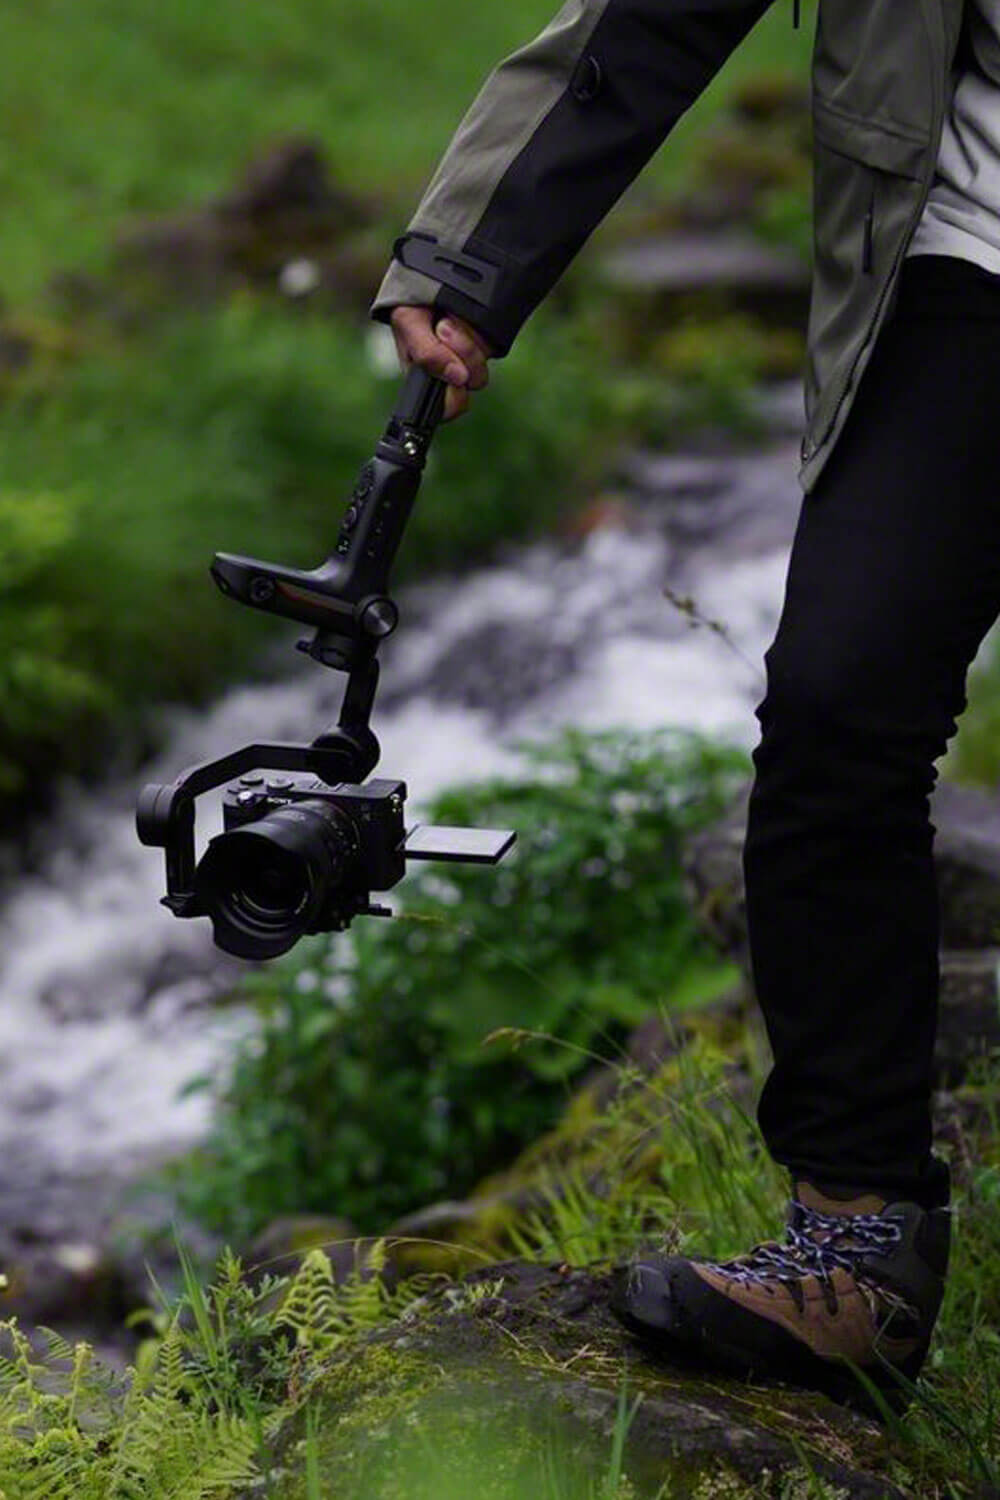 Movie making with gimbal